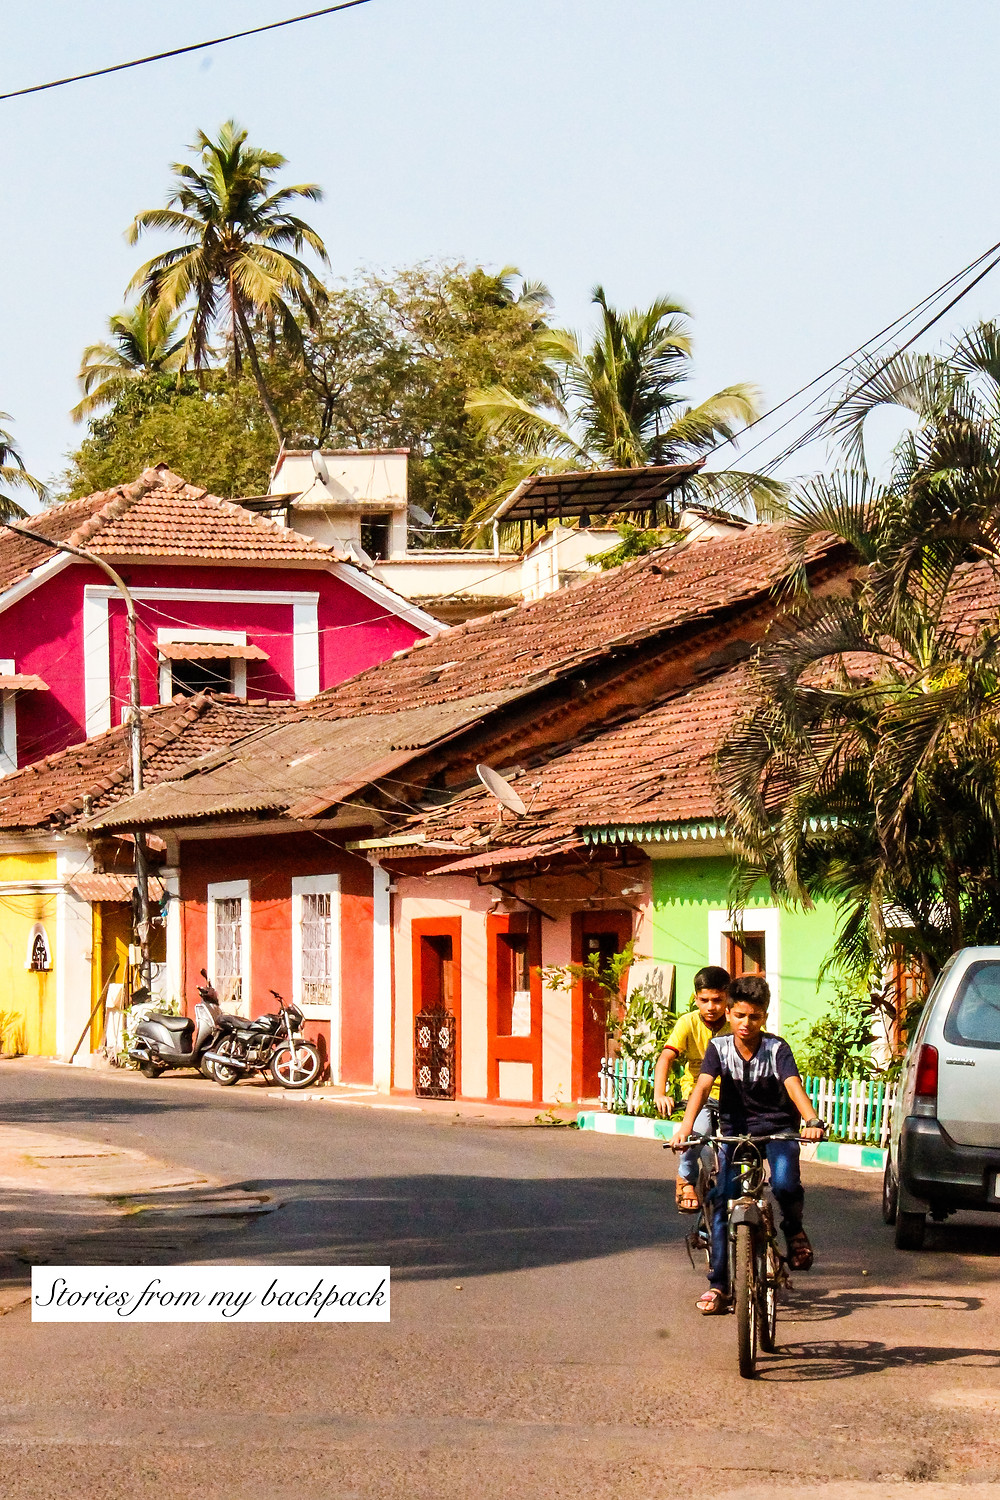 mala neighbourhood, intstagrammable spots in goa, colourful houses in panjim, colourful streets of panjim, goan architecture